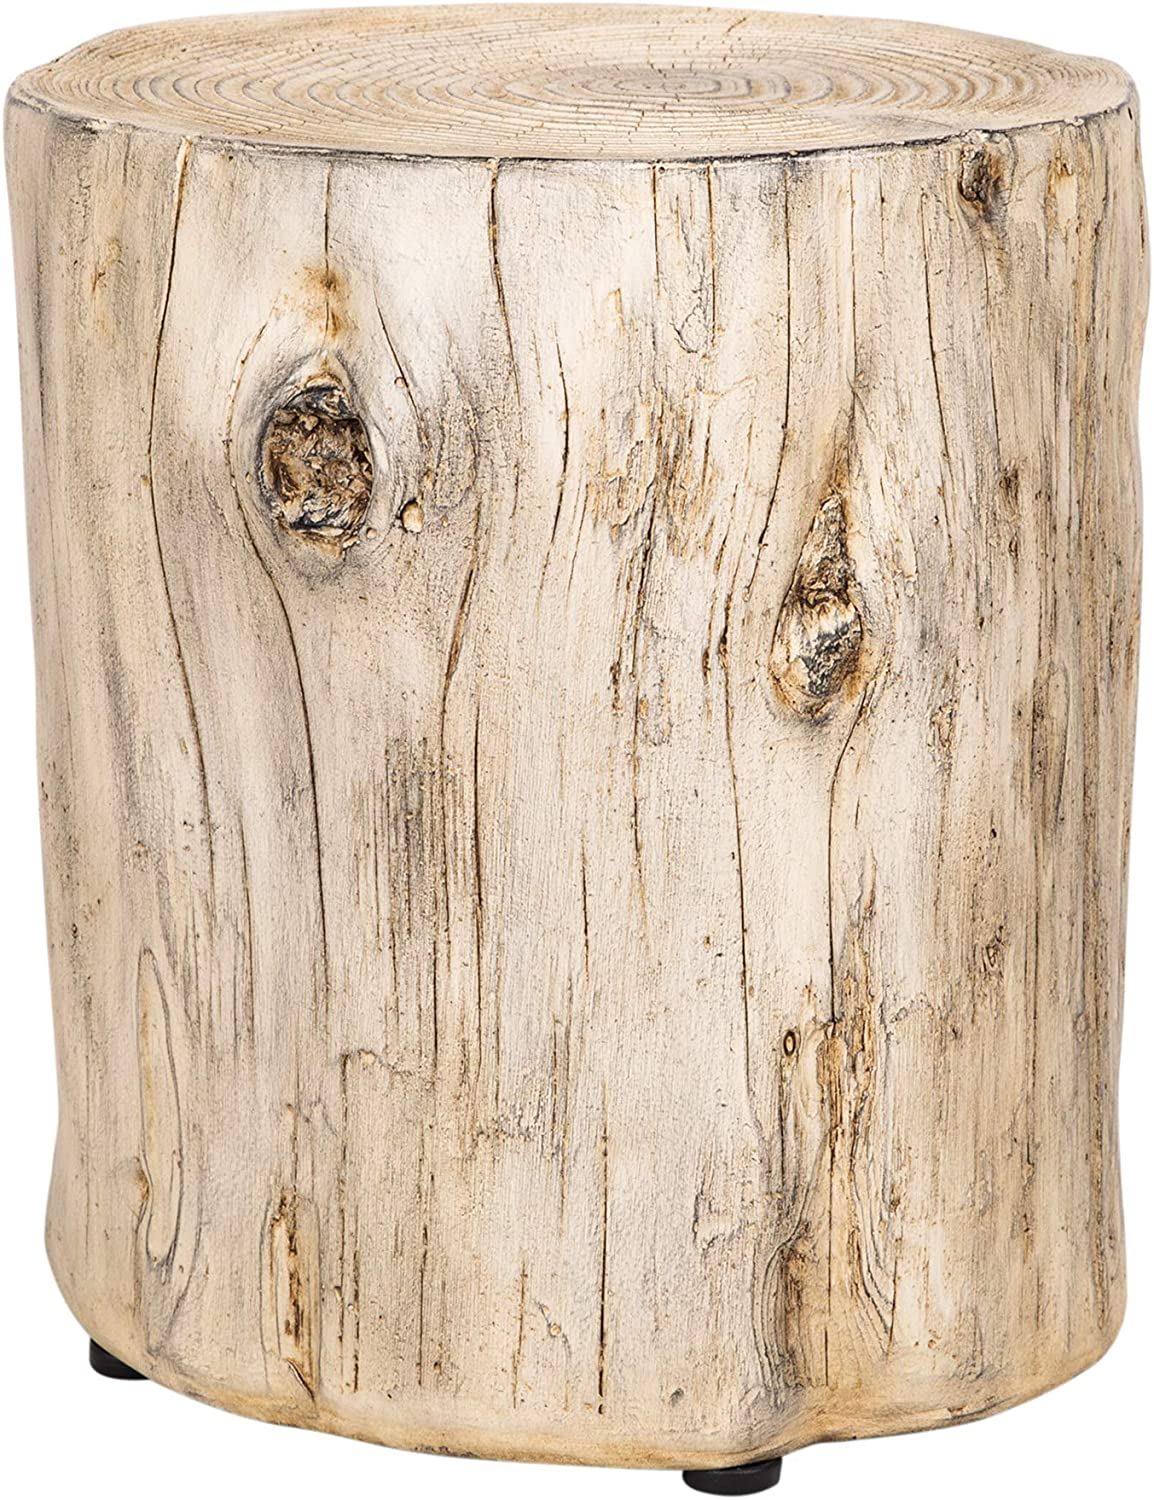 Ball & Cast Faux Wood Stump Stool Accent Table 14.9